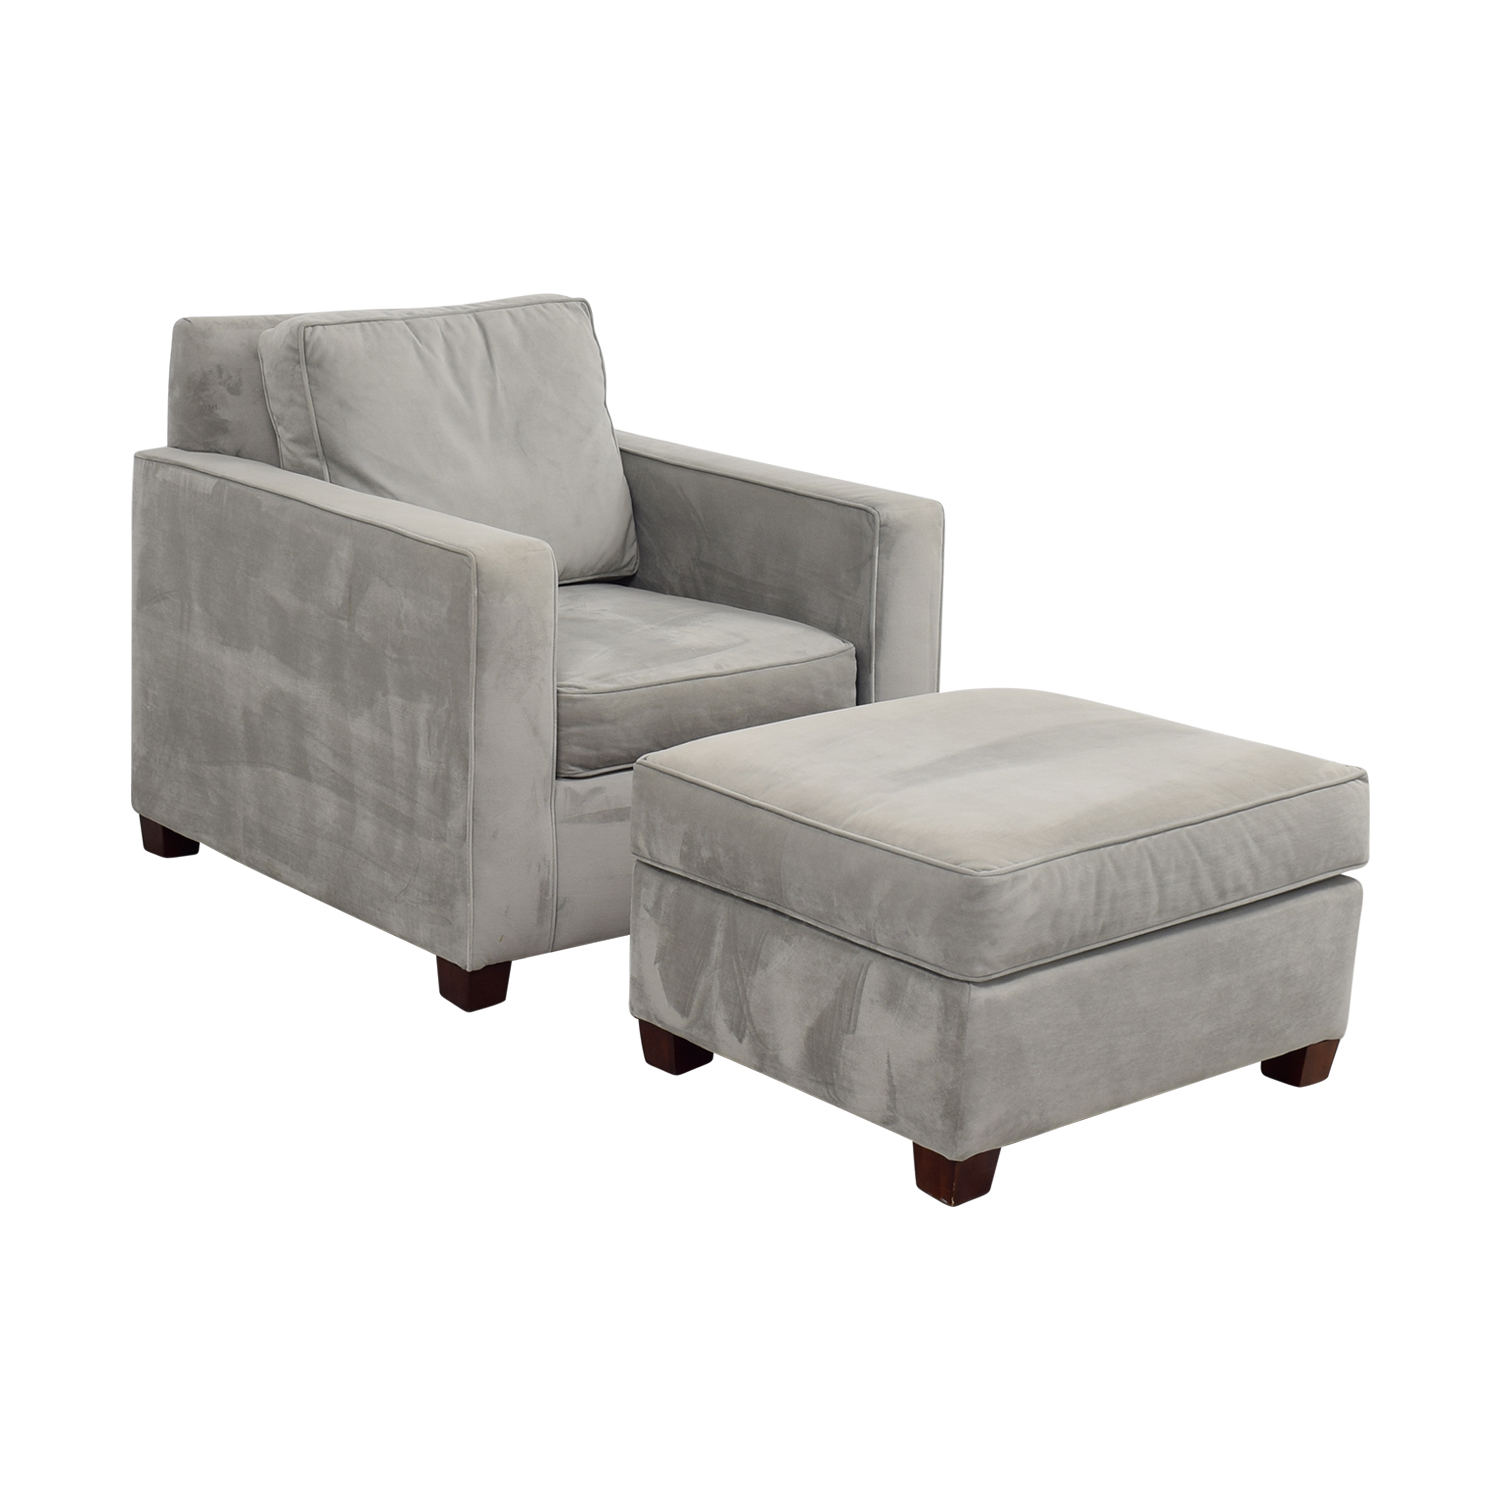 49 Off West Elm West Elm Grey Accent Chair And Ottoman